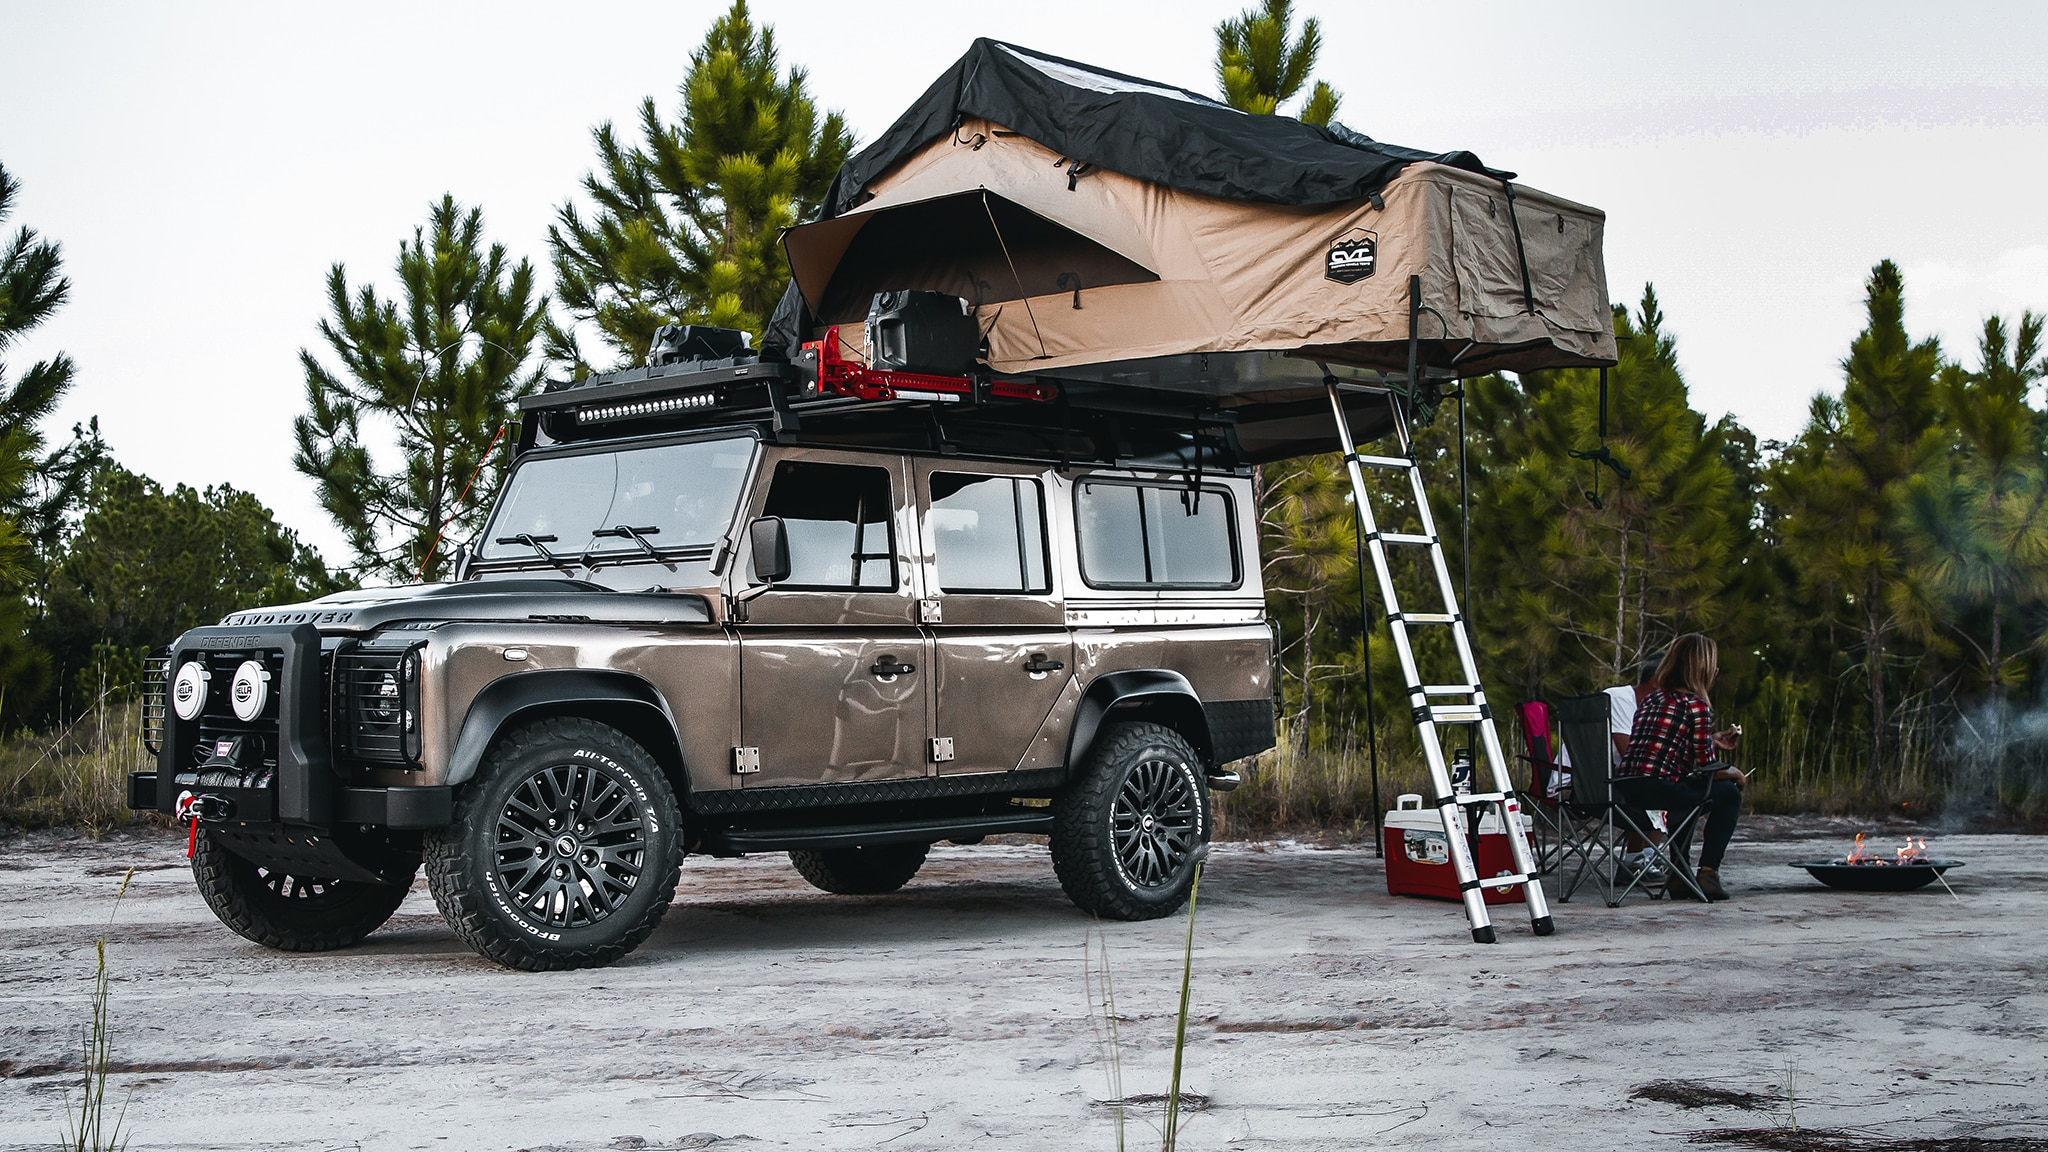 This Land Rover Defender Overland Camper Is Super Luxe